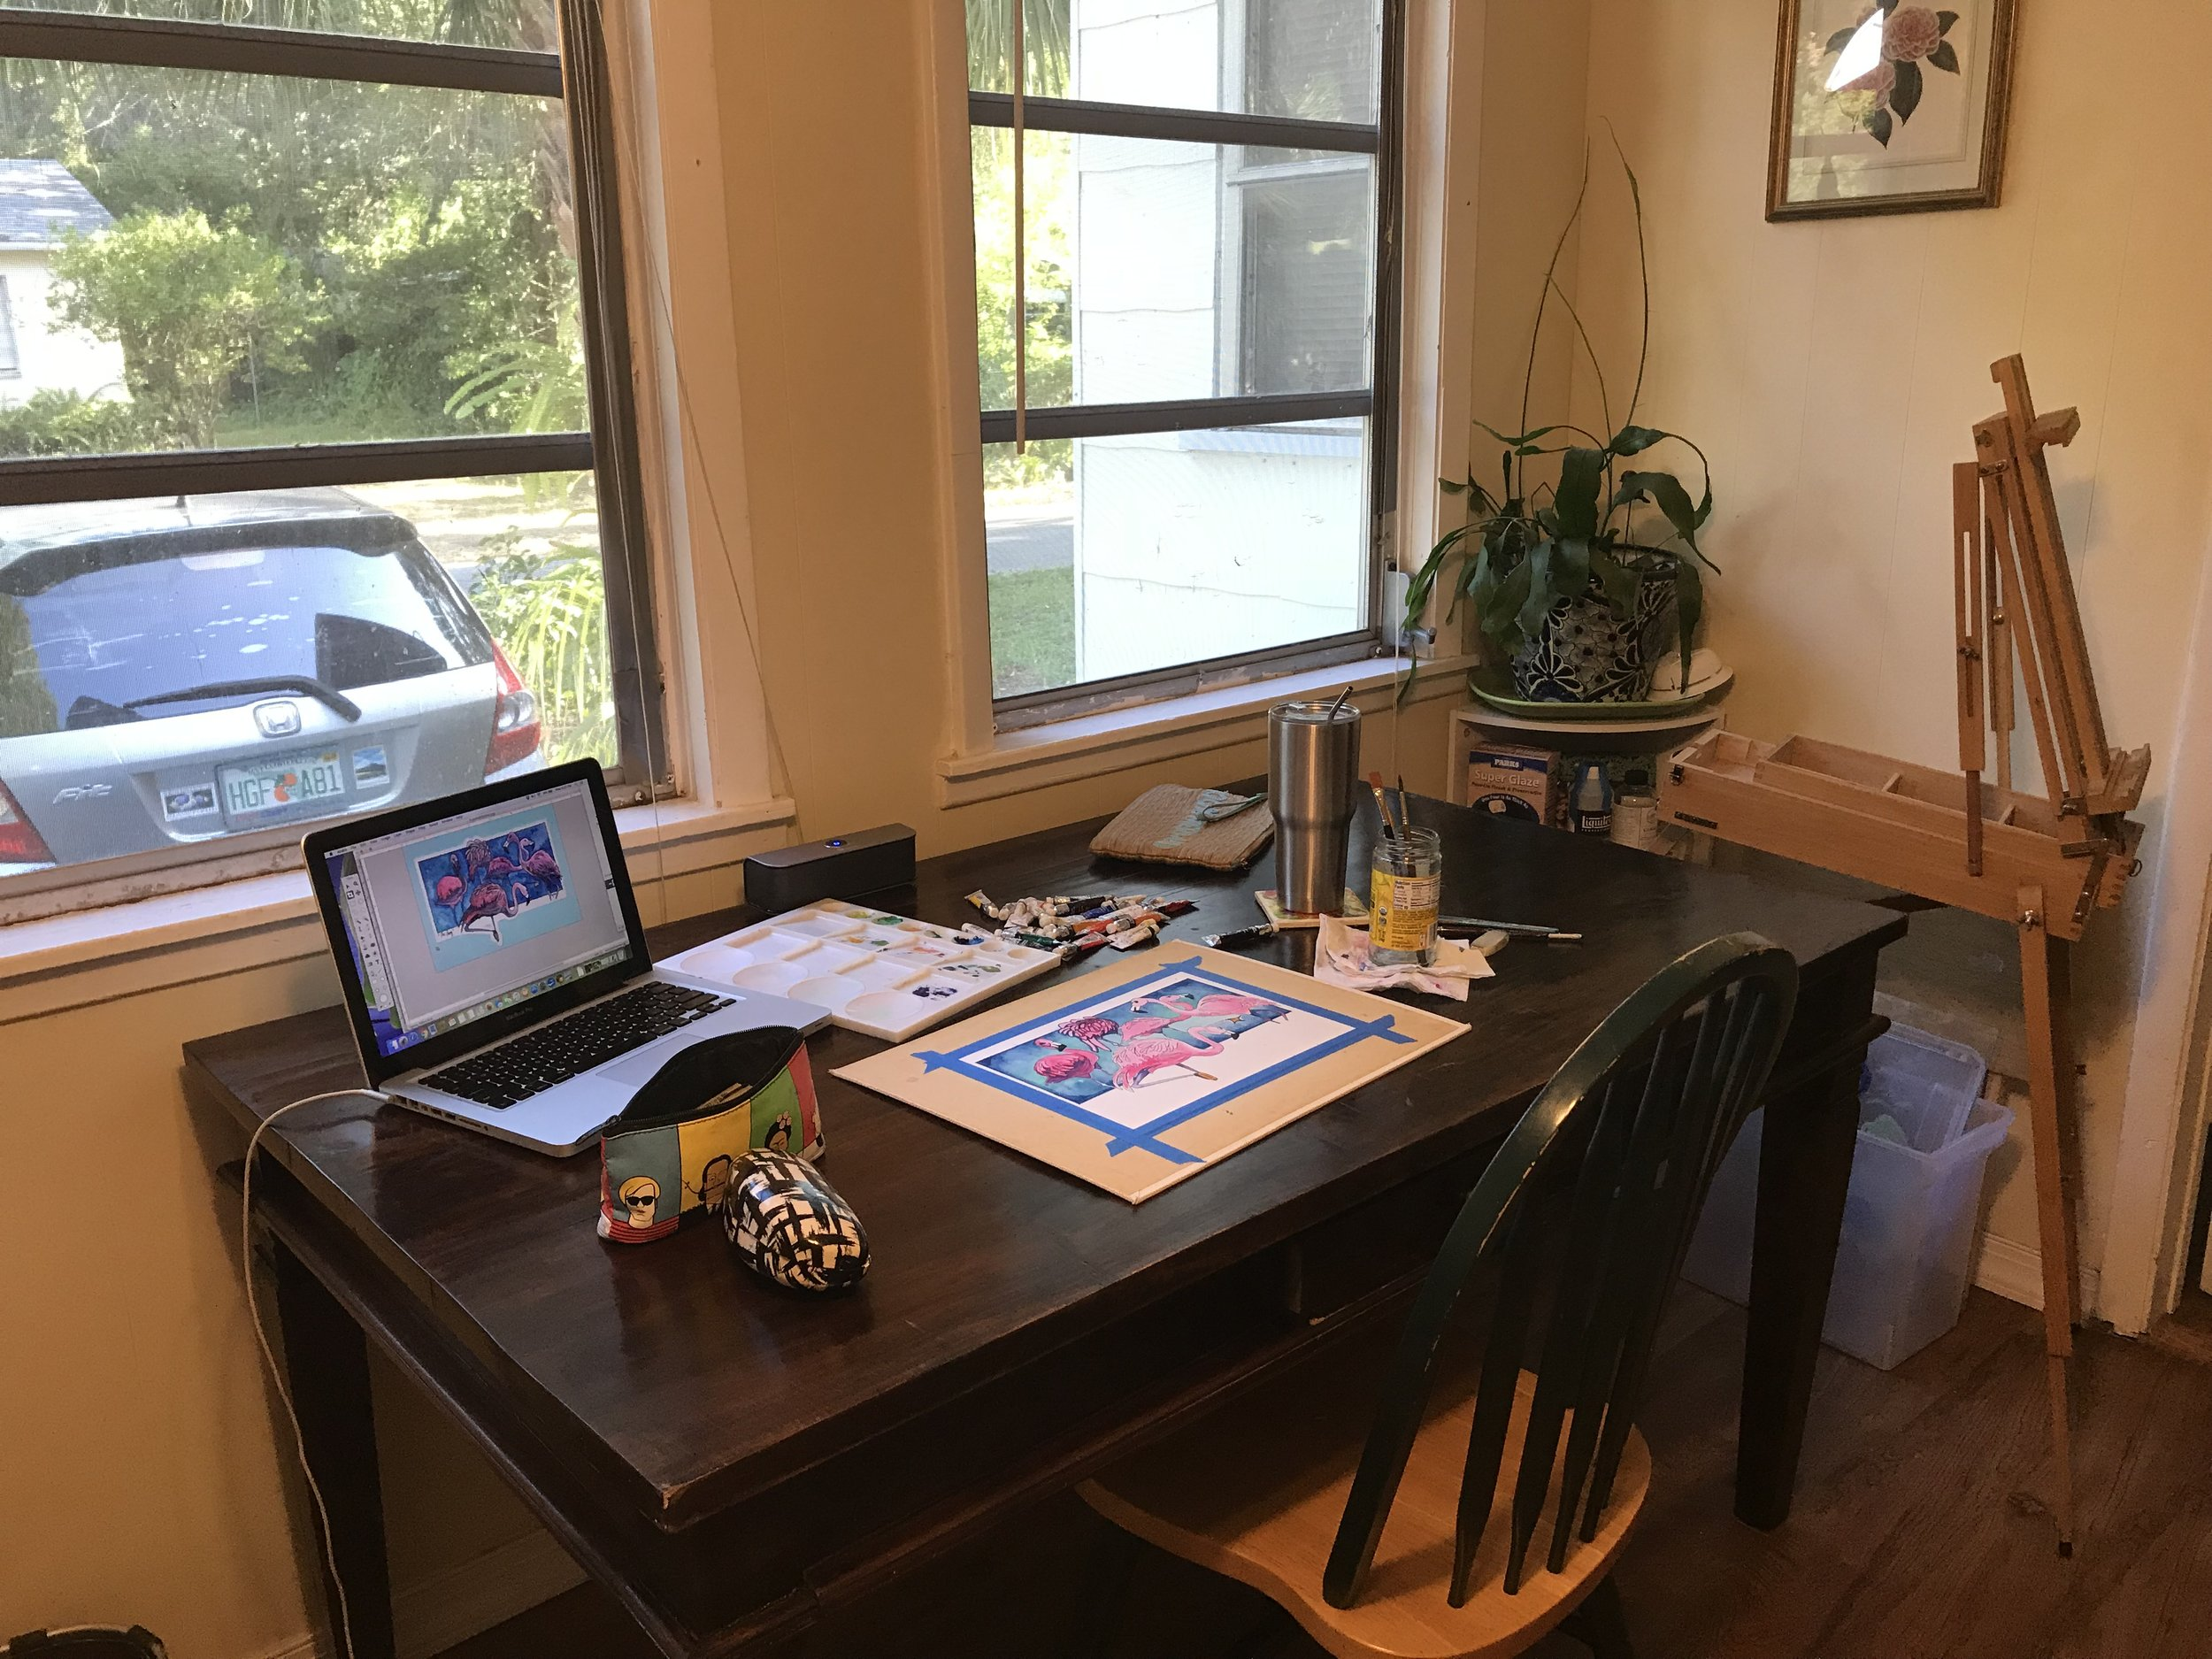 A new desk purchased for the Art by Anna Ayres Gulfport studio!